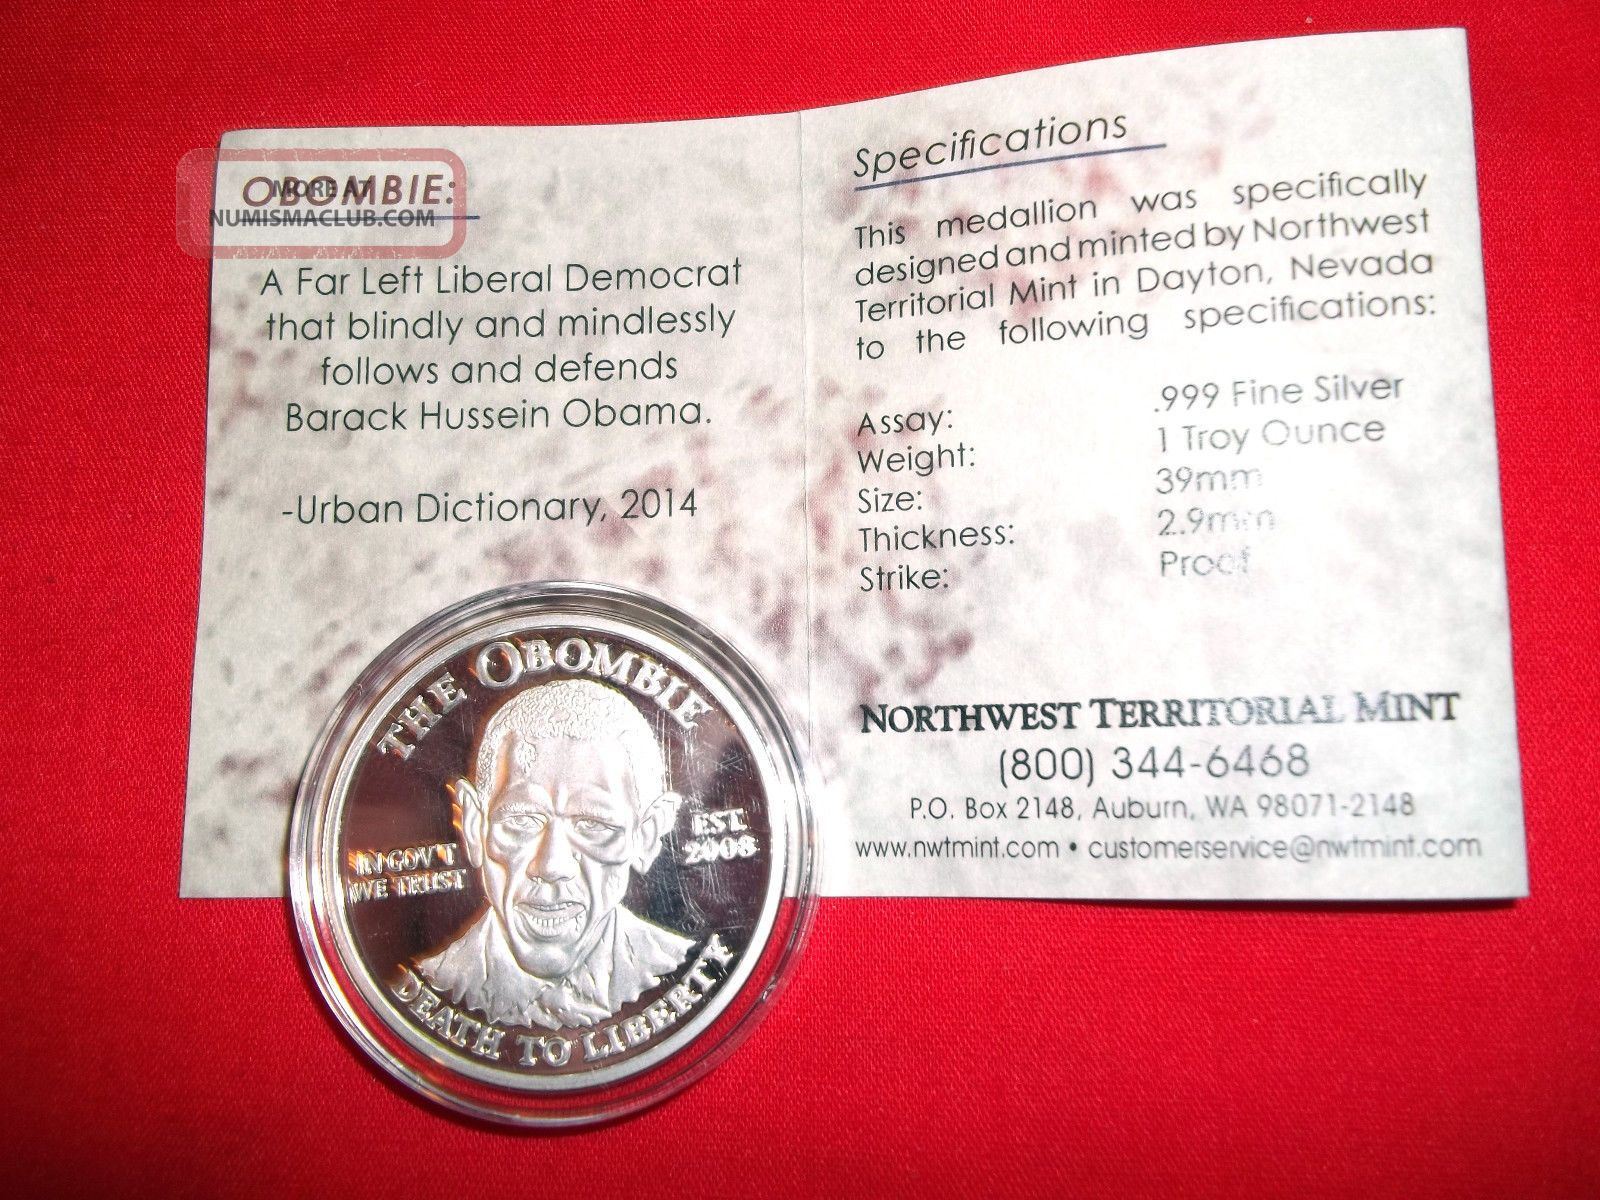 1 Troy Ounce 999 Fine Silver Round The Obombie Design